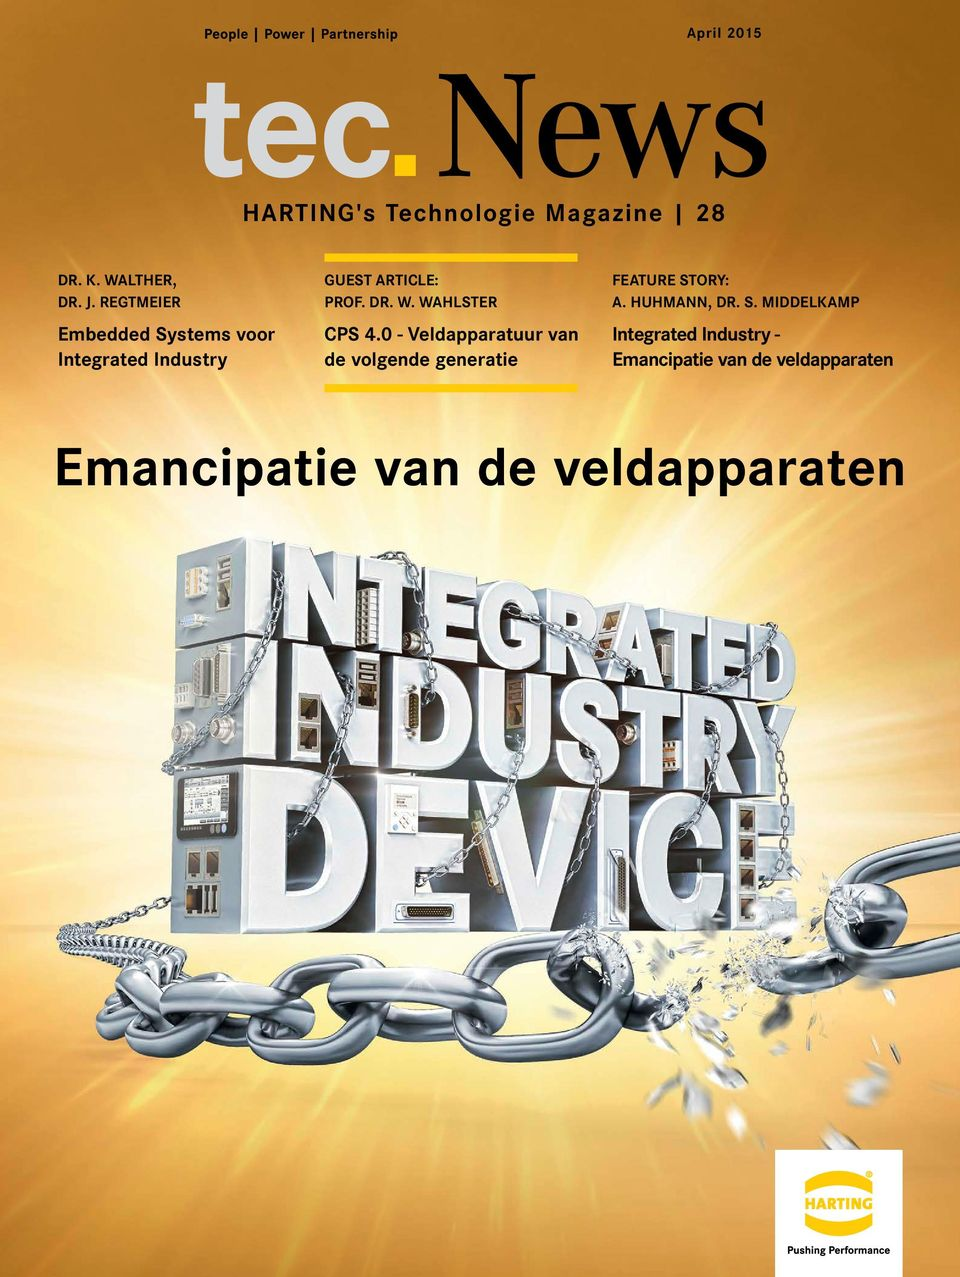 ORY: A. HUHMANN, DR. S. MIDDELKAMP Embedded Systems voor Integrated Industry CPS 4.